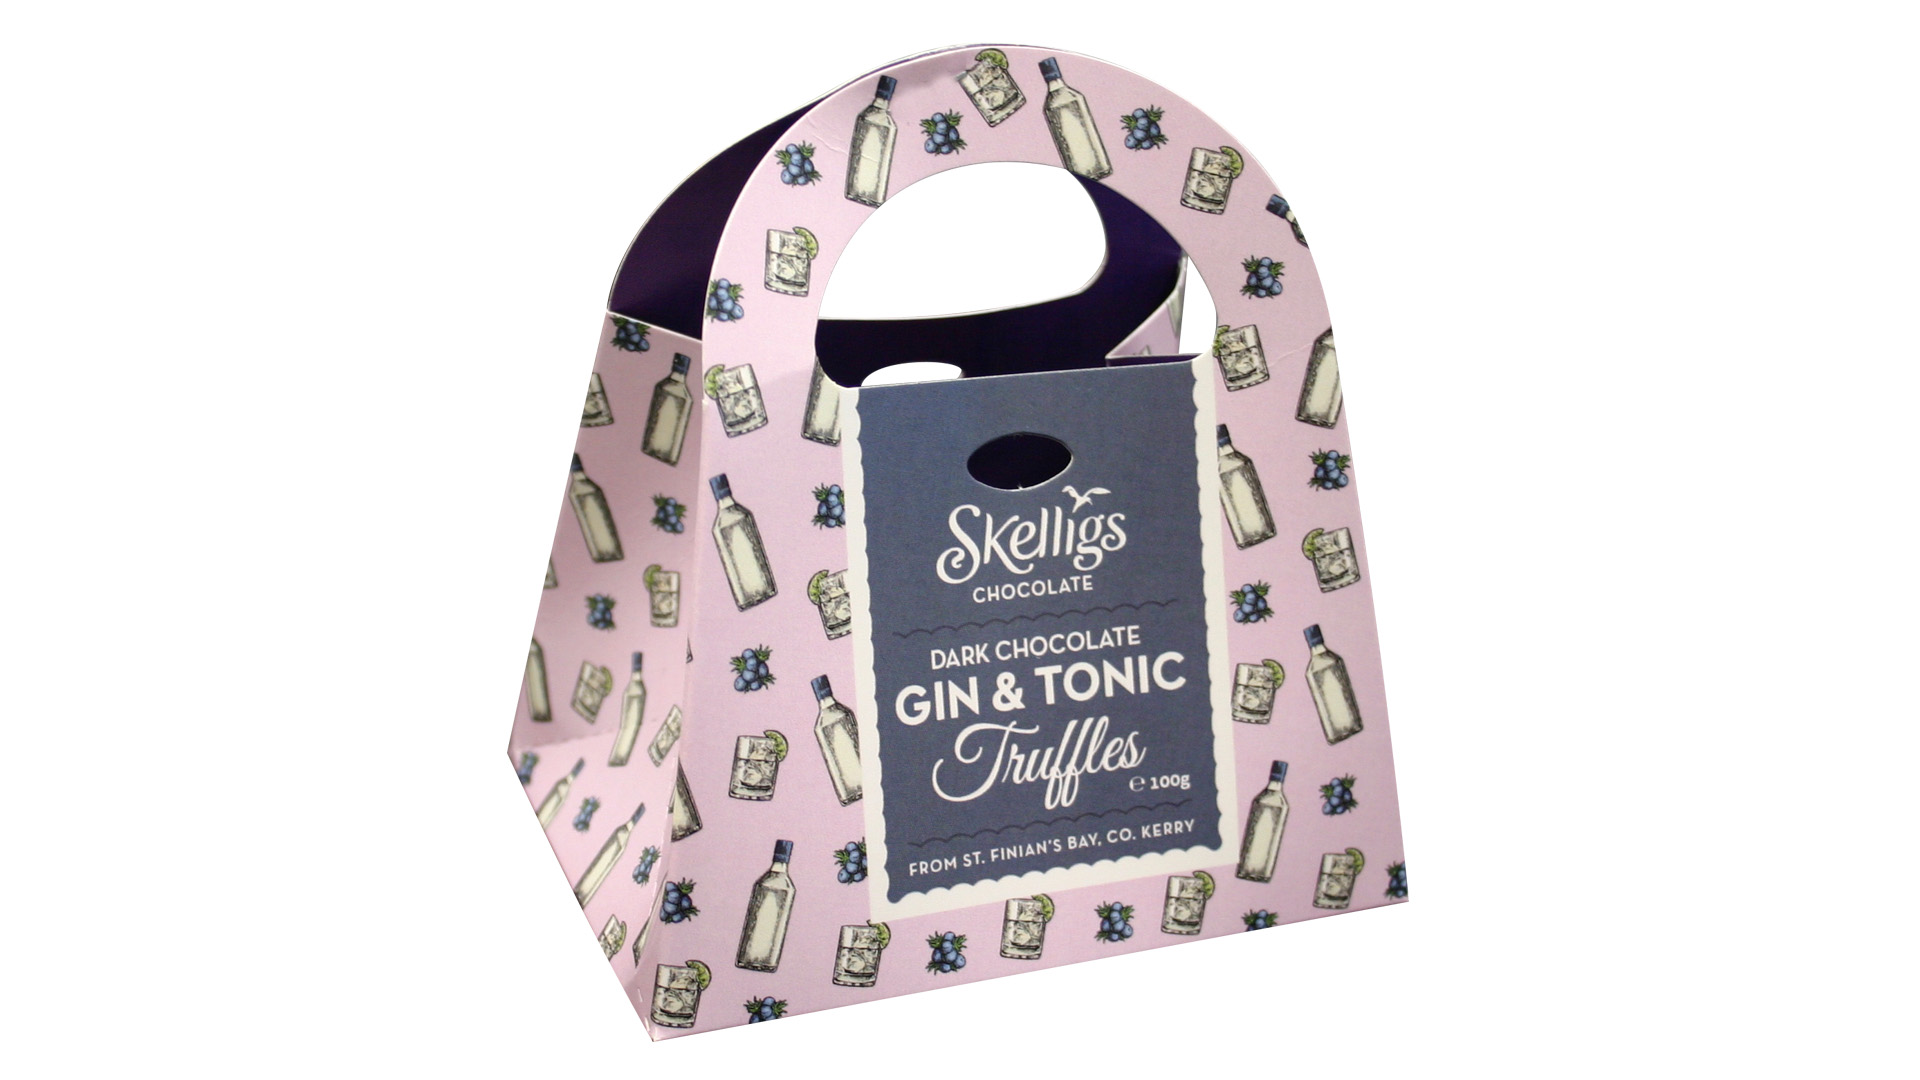 Skellig chocolates gin and tonic bag packaging